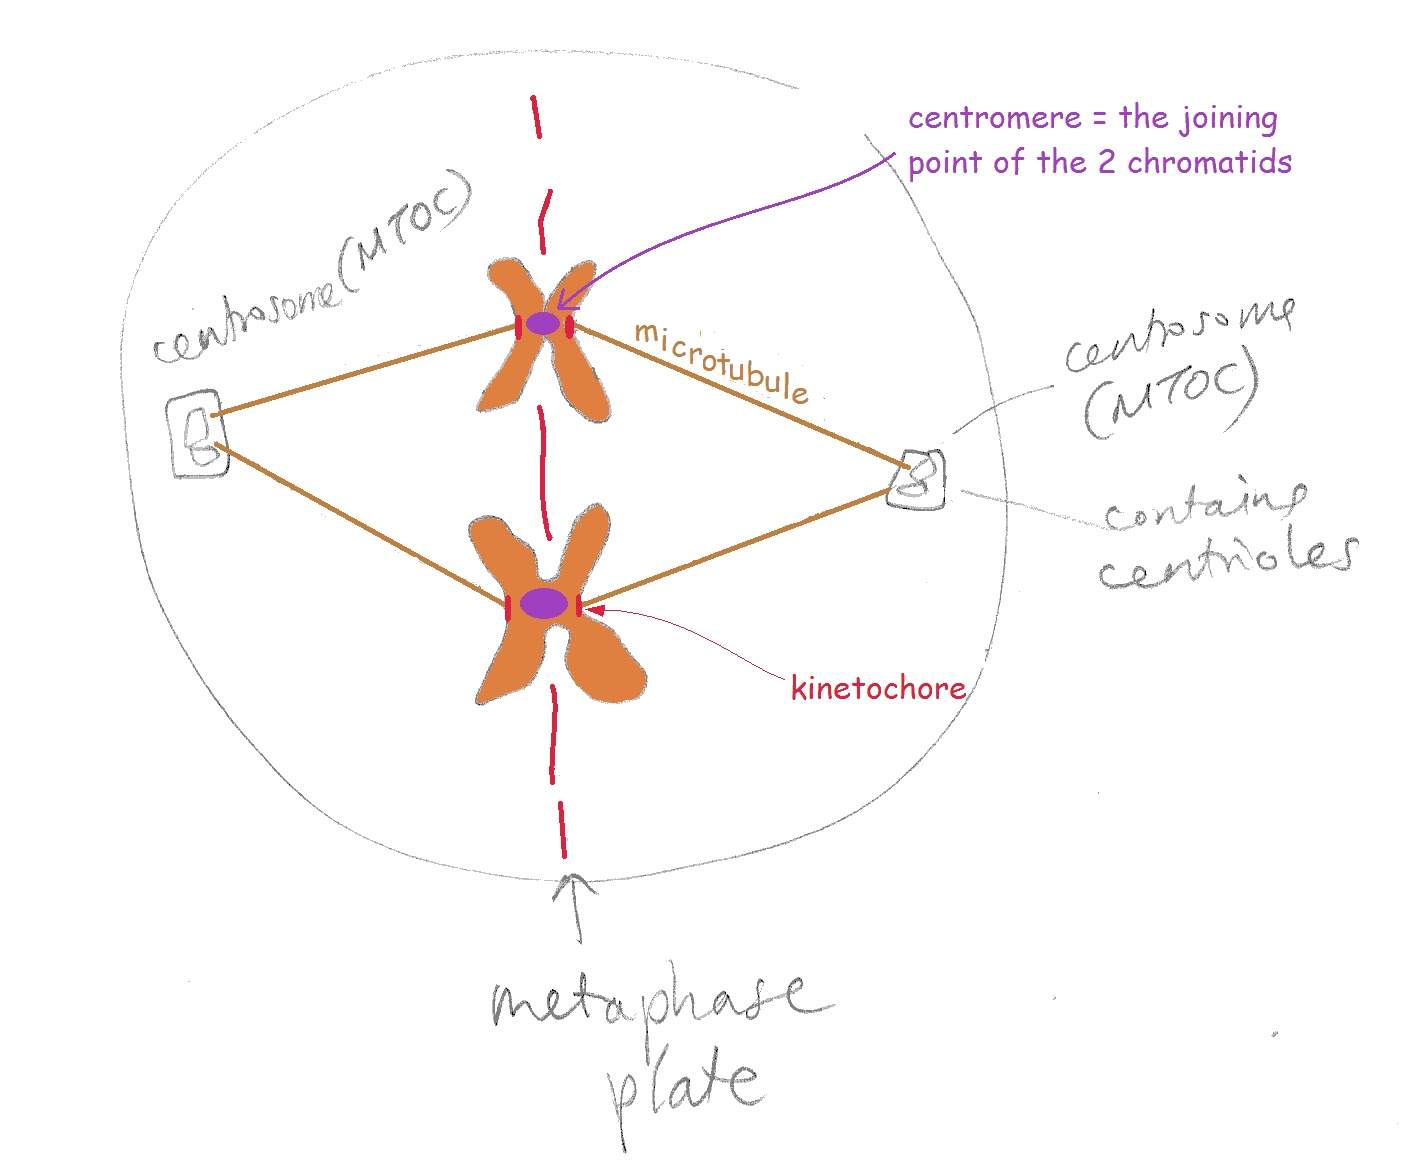 jen wilson milngavie tutors biology and chemistry tuition helps you to learn this diagram is just a sketch not meant to be an accurate representation of what these things necessarily look like its just to